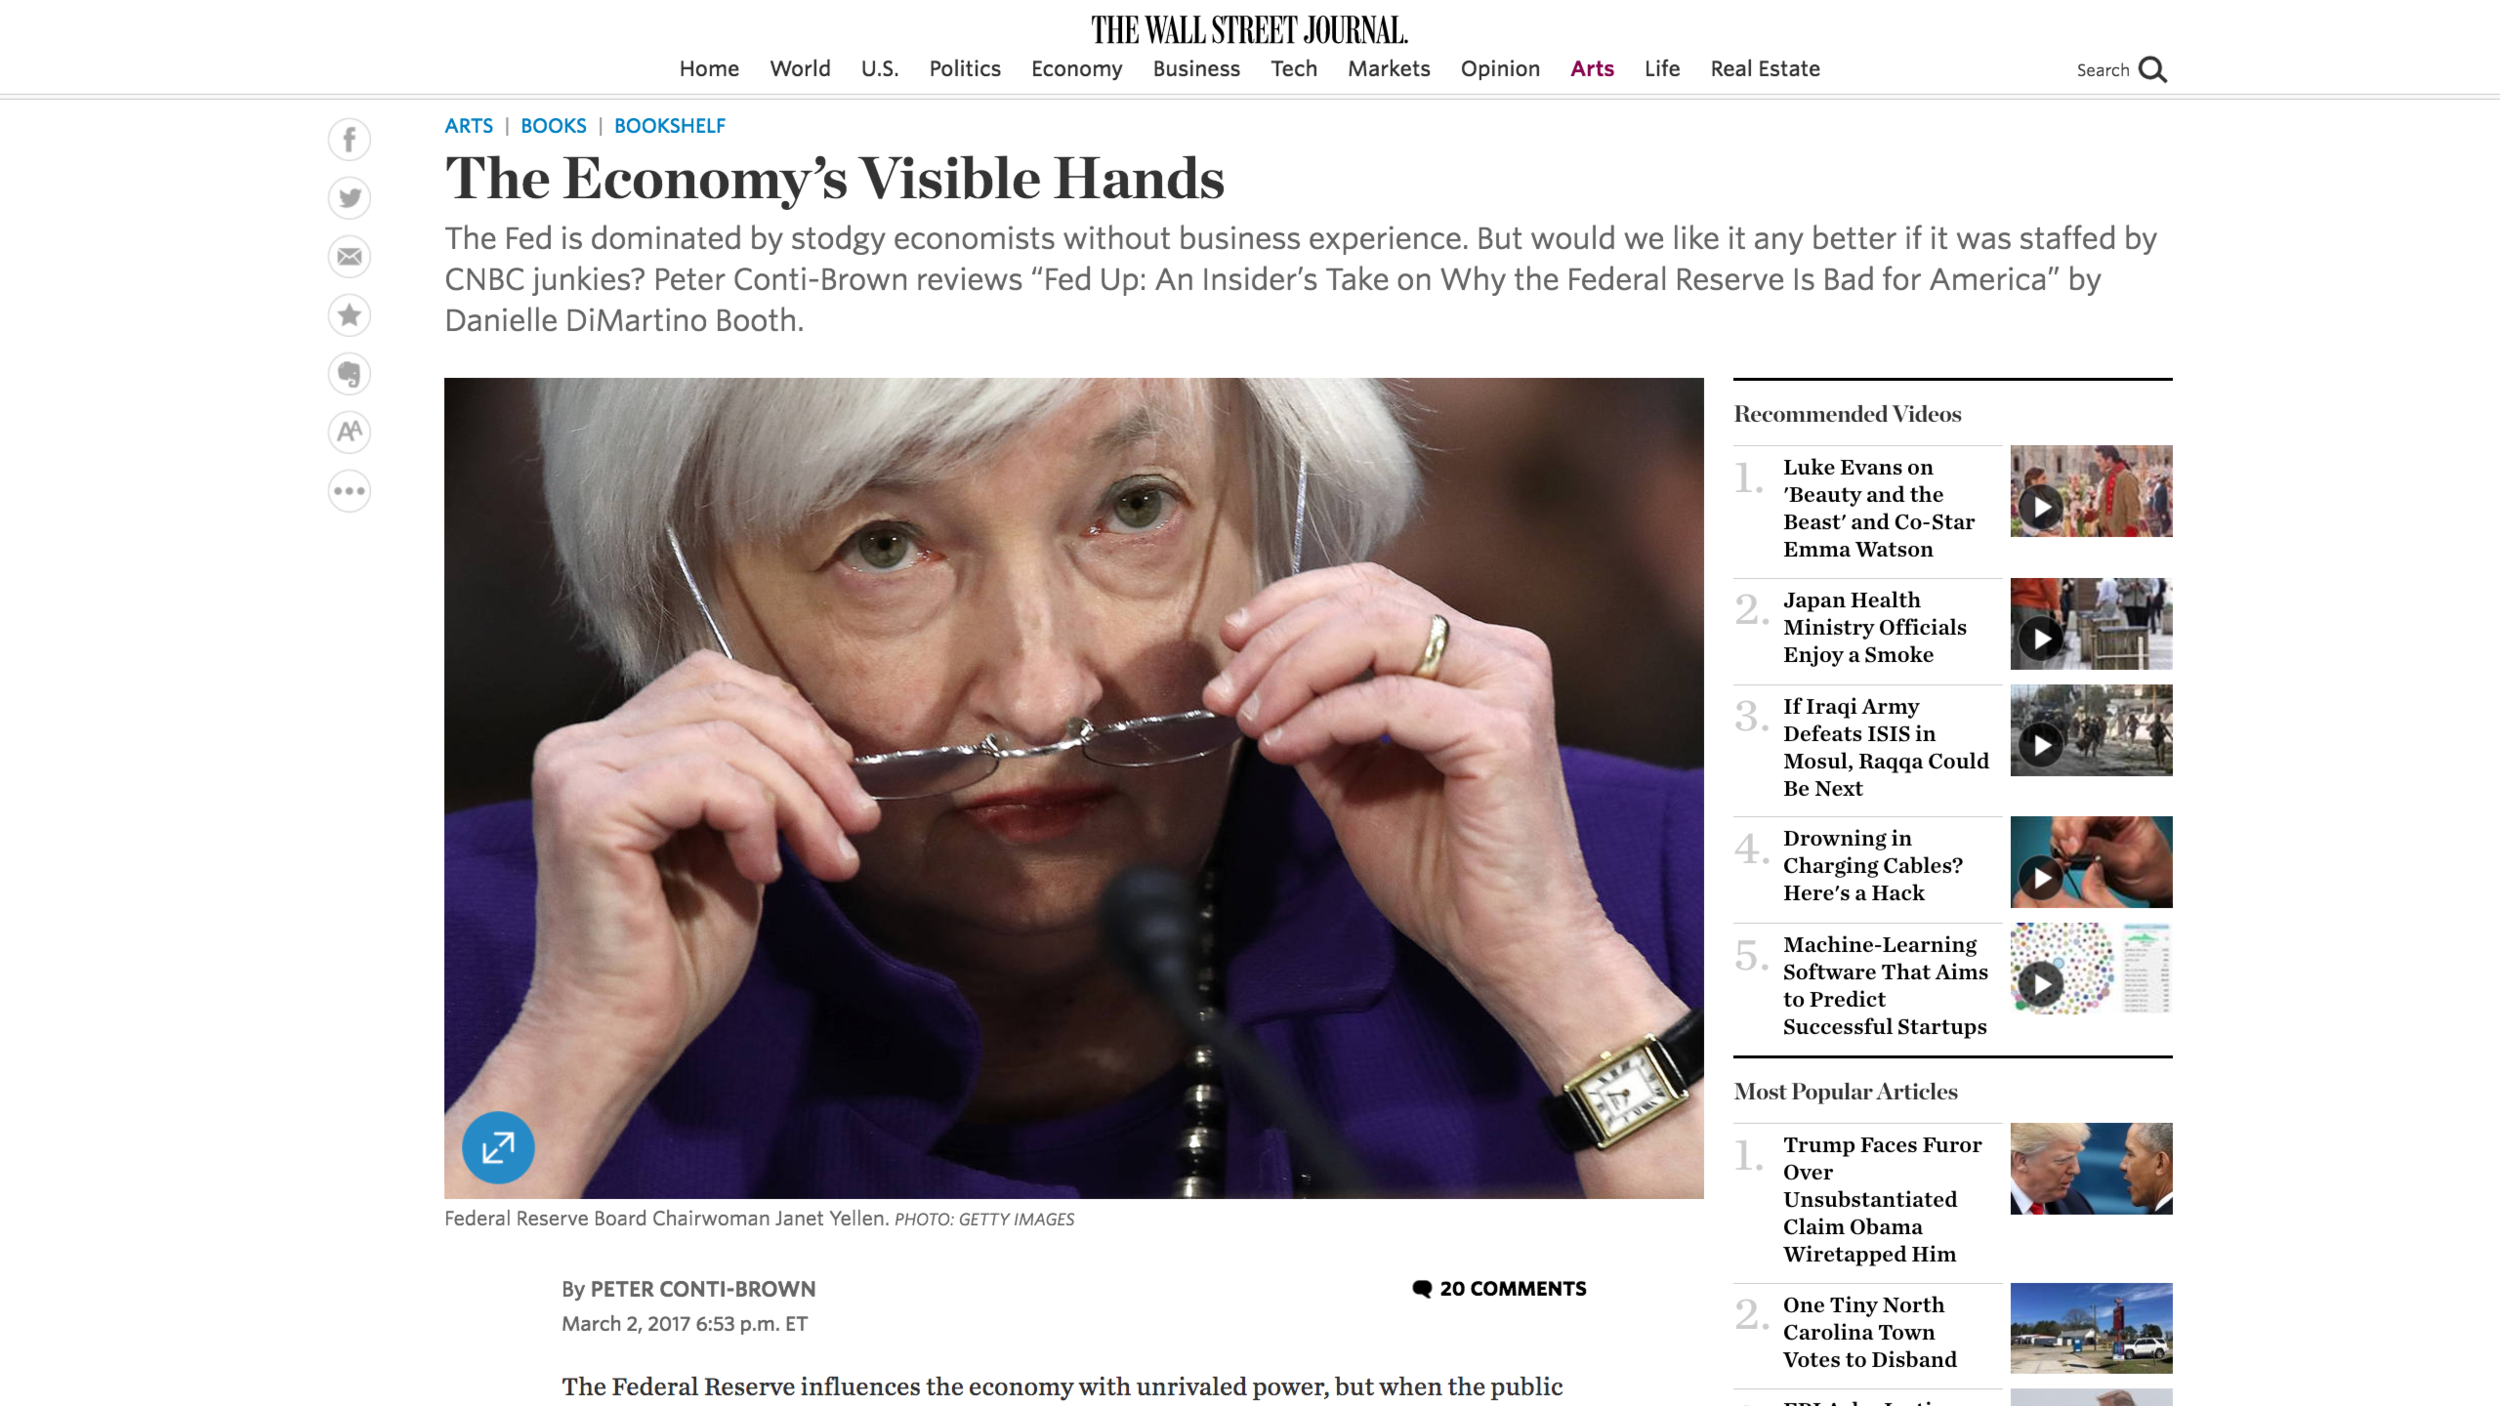 Link to the Wall Street Journal op-ed shown above